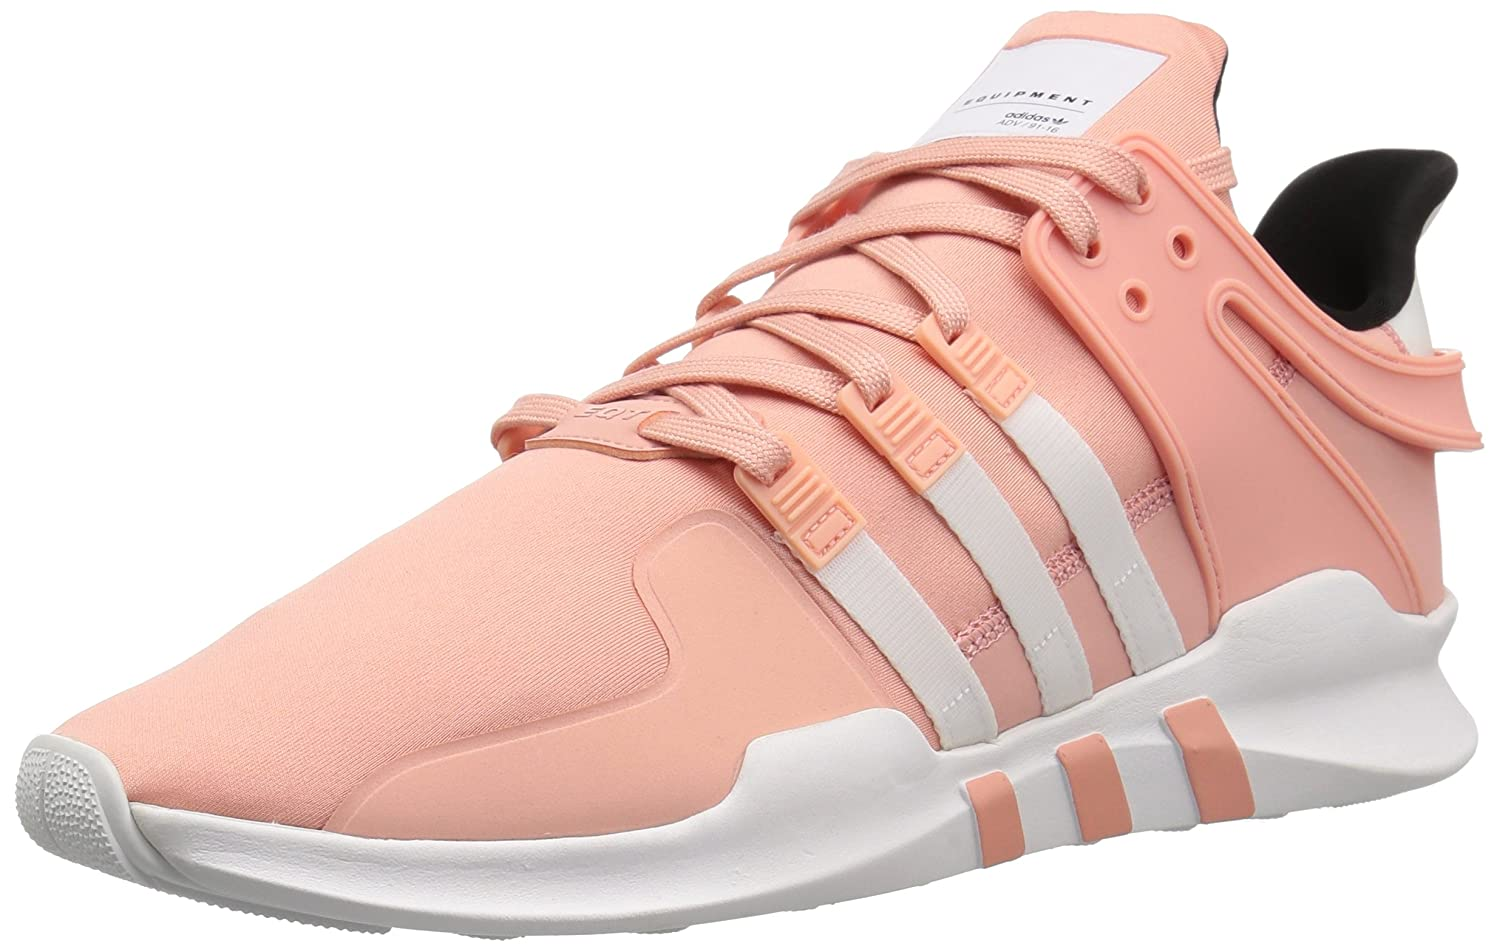 sports shoes 081c8 b6f8d Amazon.com  adidas Mens Eqt Support Adv Fashion Sneaker  Fashion Sneakers